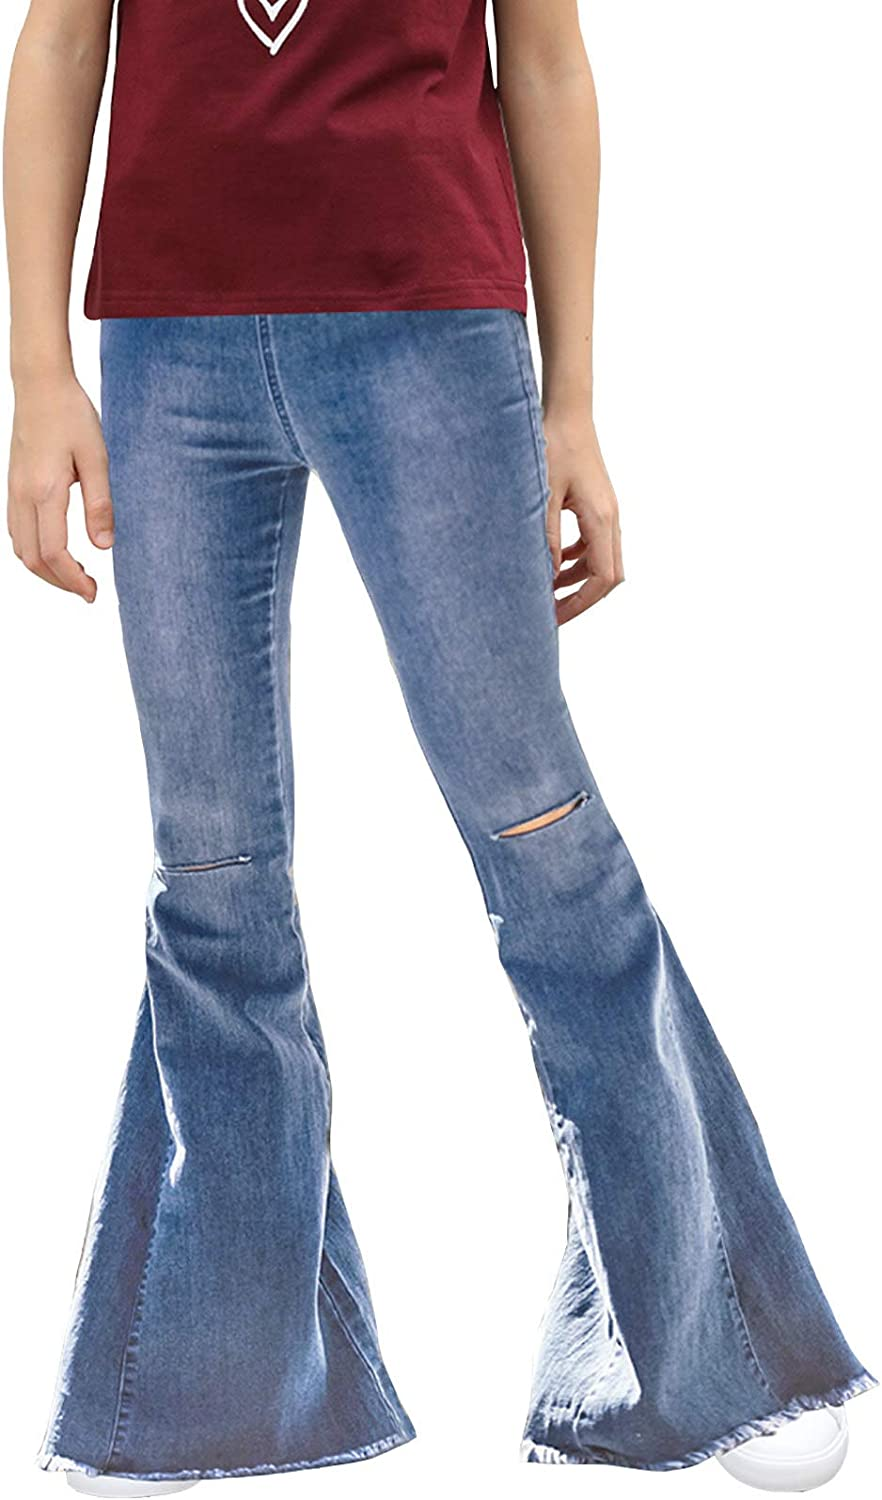 Sidefeel Girls Ripped Flare Jeans Don't miss the campaign Waist Fitte Elastic High San Jose Mall